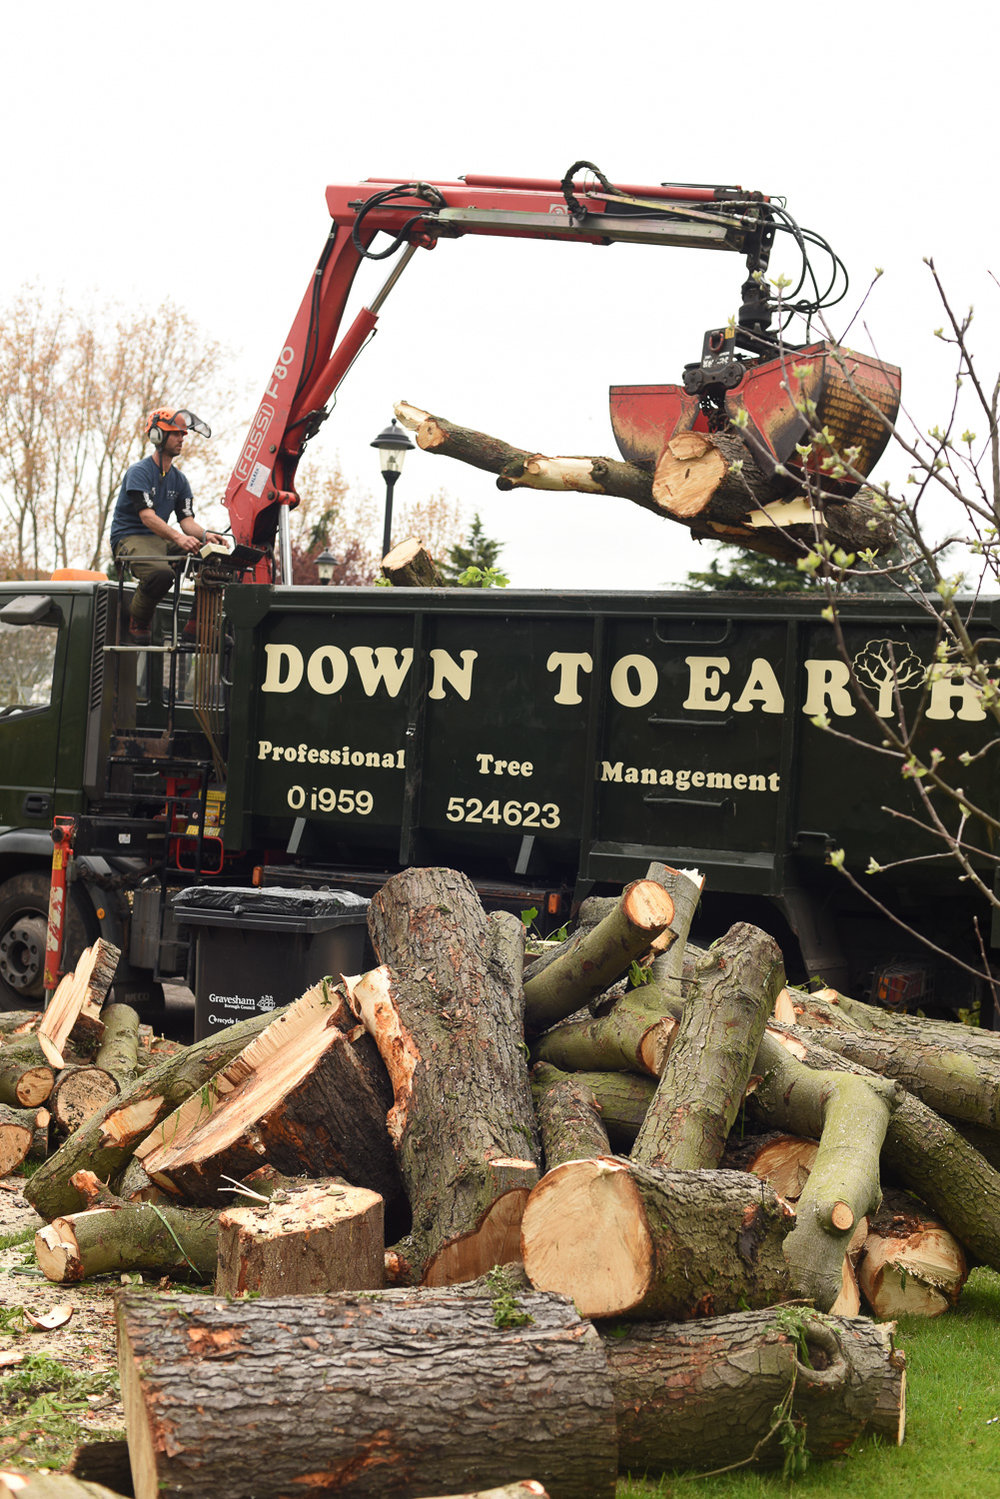 Tree Surgeon and Maintenance Services in Chislehurst